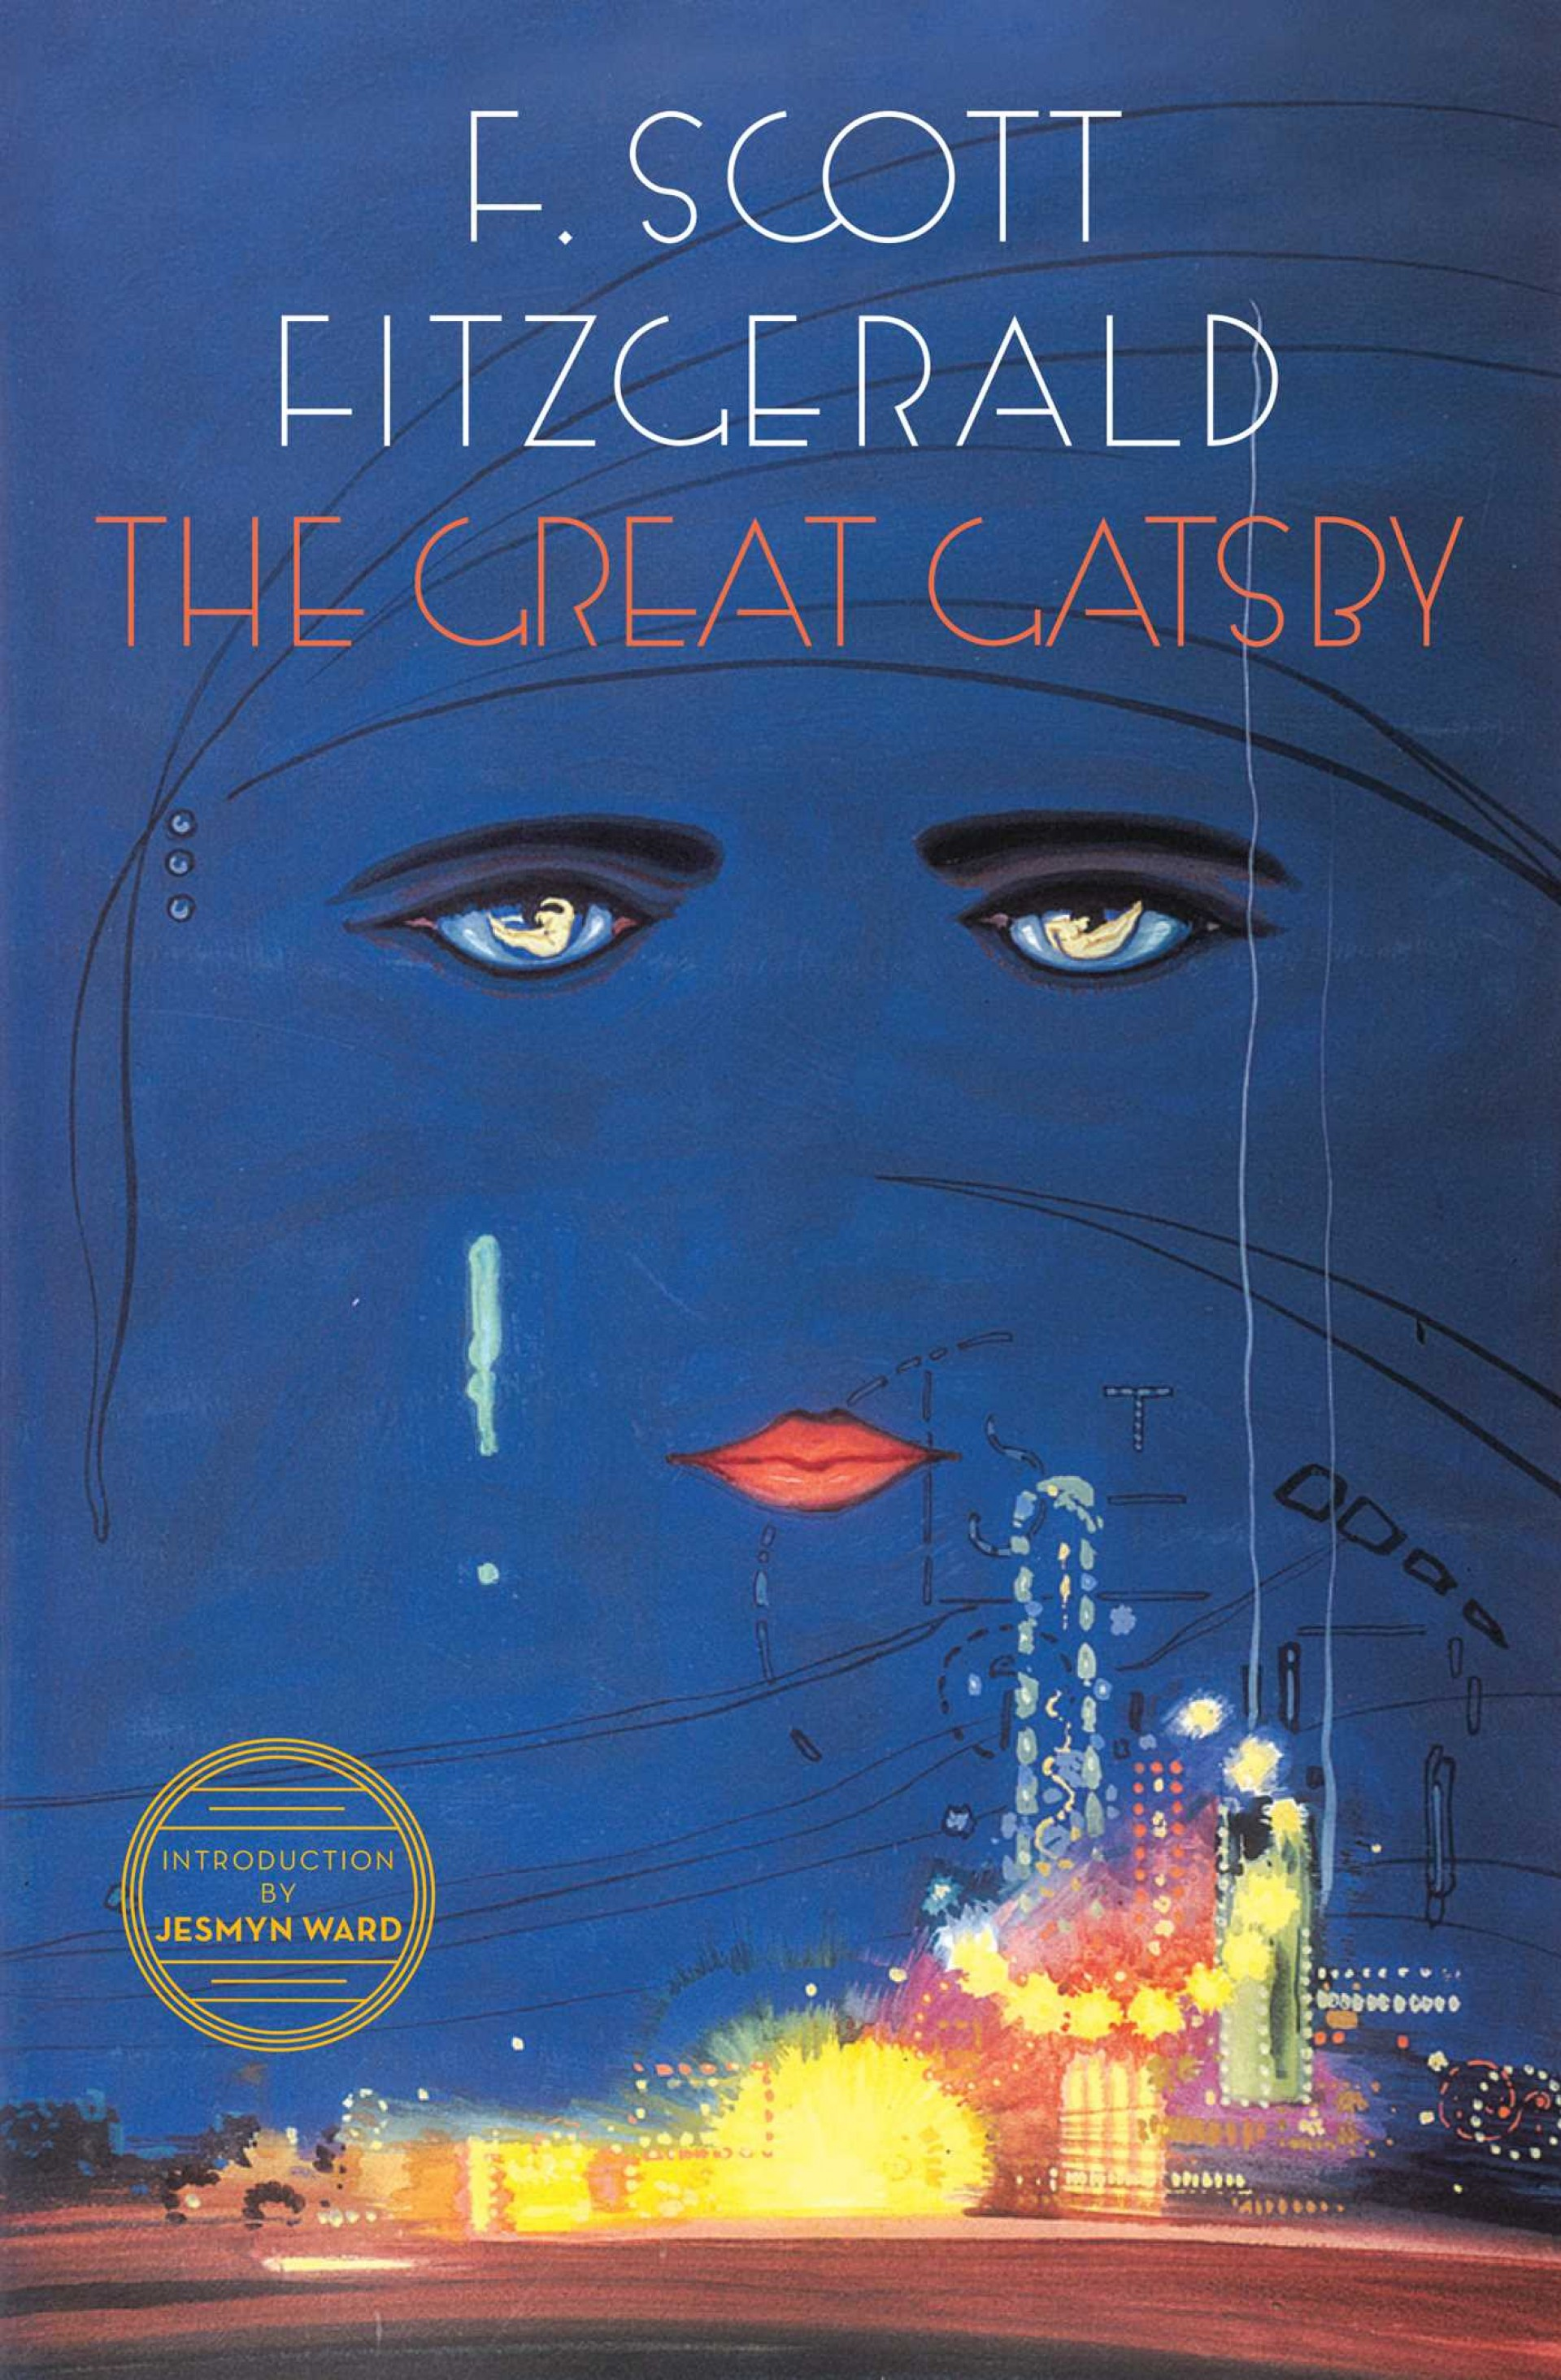 026 Essay Example The Great Gatsby Topics 9780743273565 Hr Exceptional Literary Question Chapter 1 1920